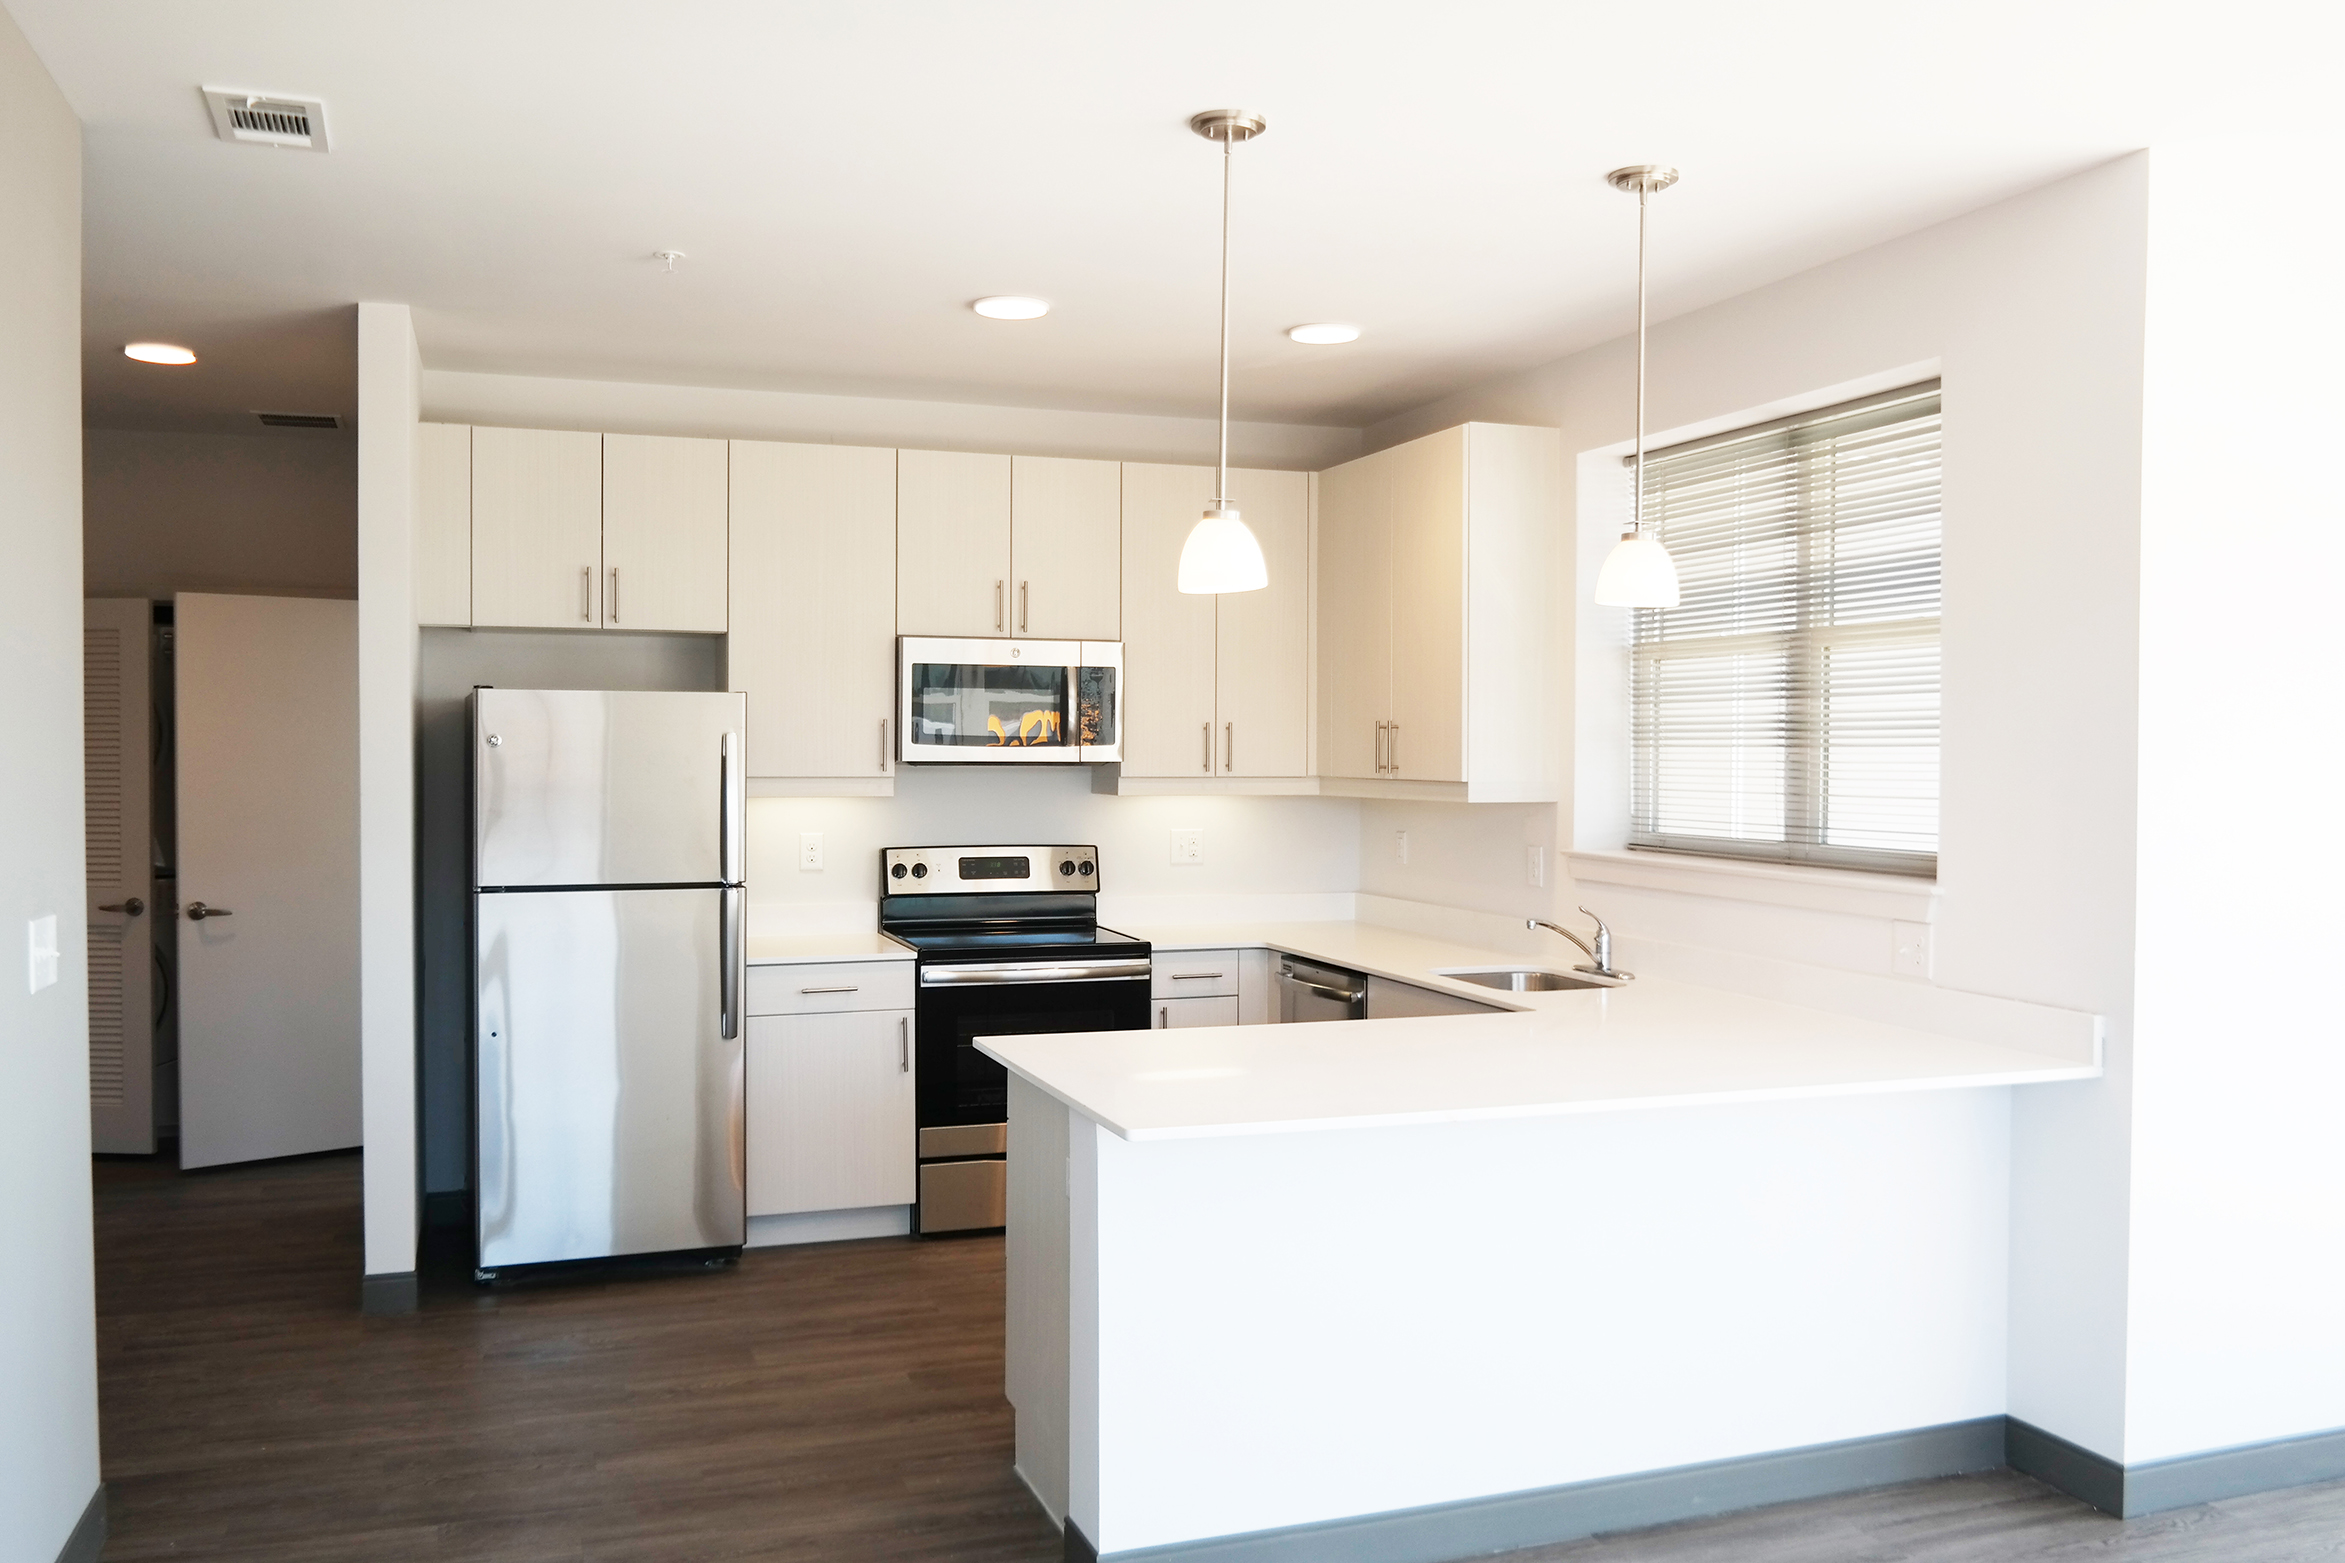 The Residences at Harlan Flats Phase II